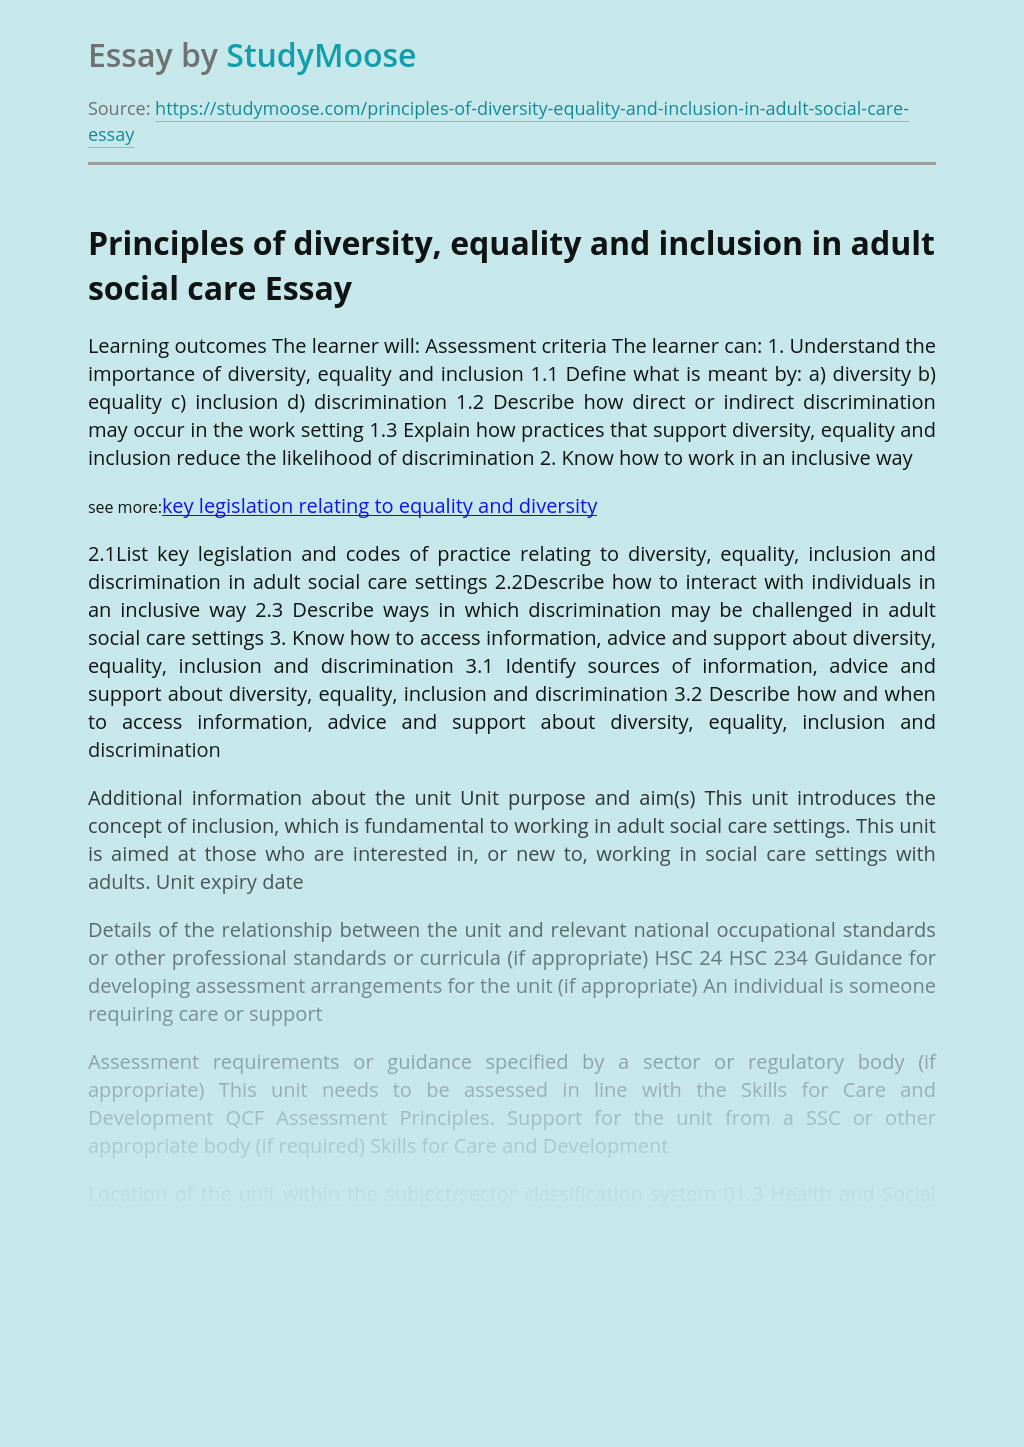 Principles of diversity, equality and inclusion in adult social care